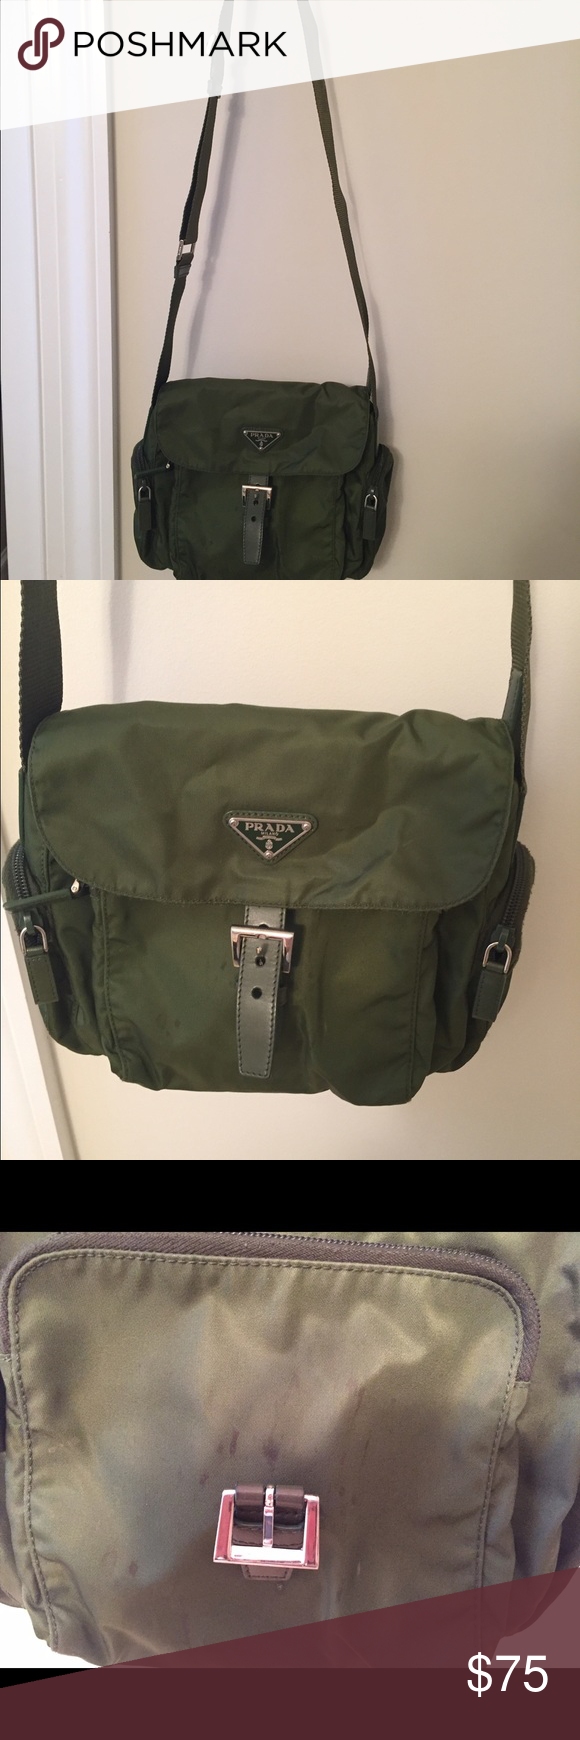 1690b2467363 Prada nylon cross body purse Great weekend or travel purse. Color is a  light army green. There are some water spots on the front as pictured.  Front and size ...